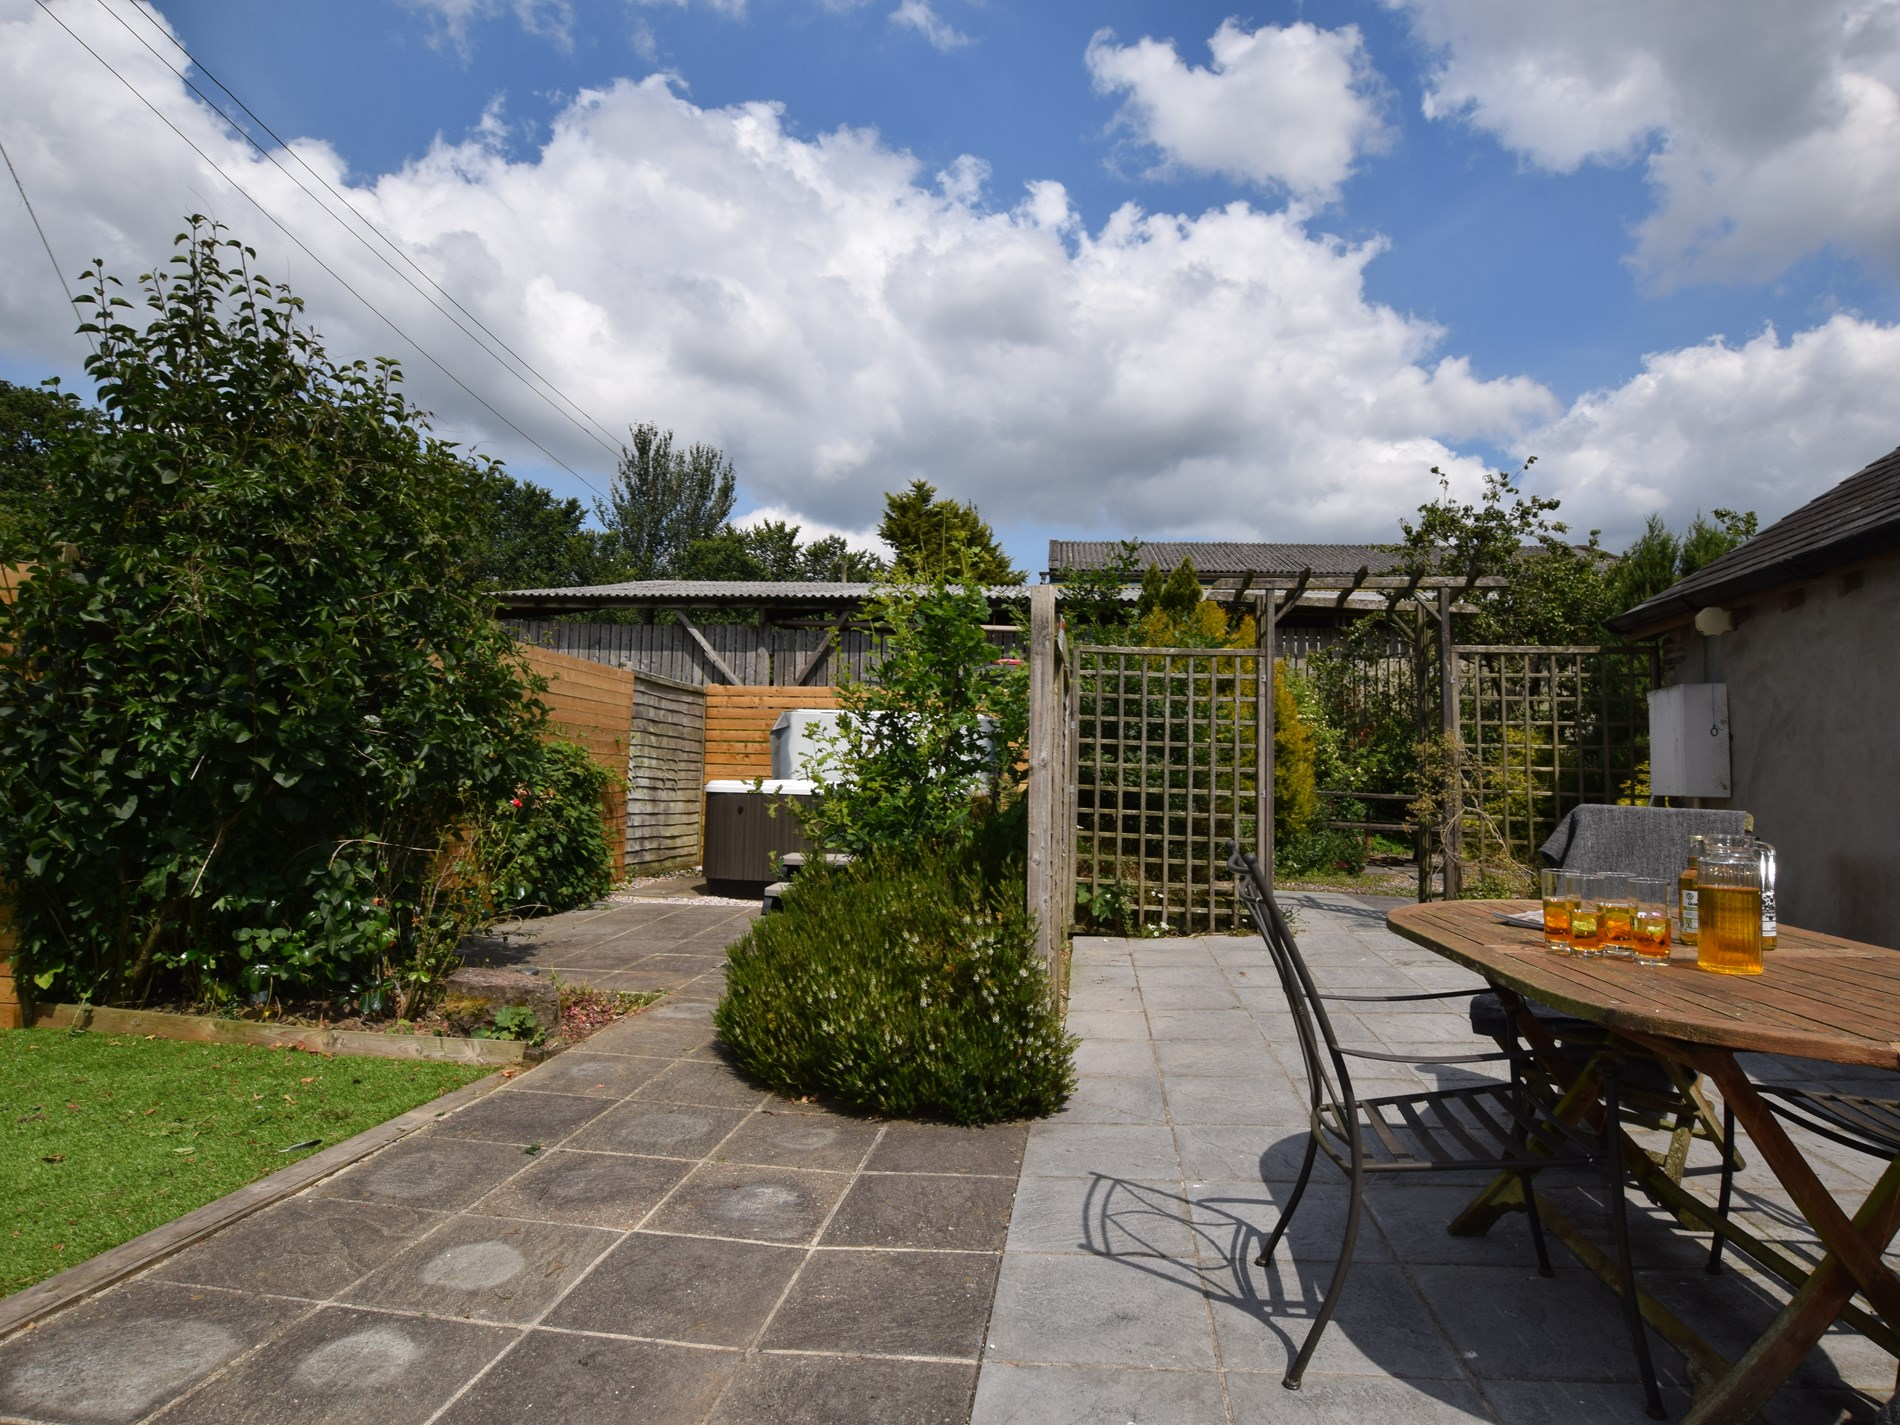 Enjoy the private garden and hot tub area